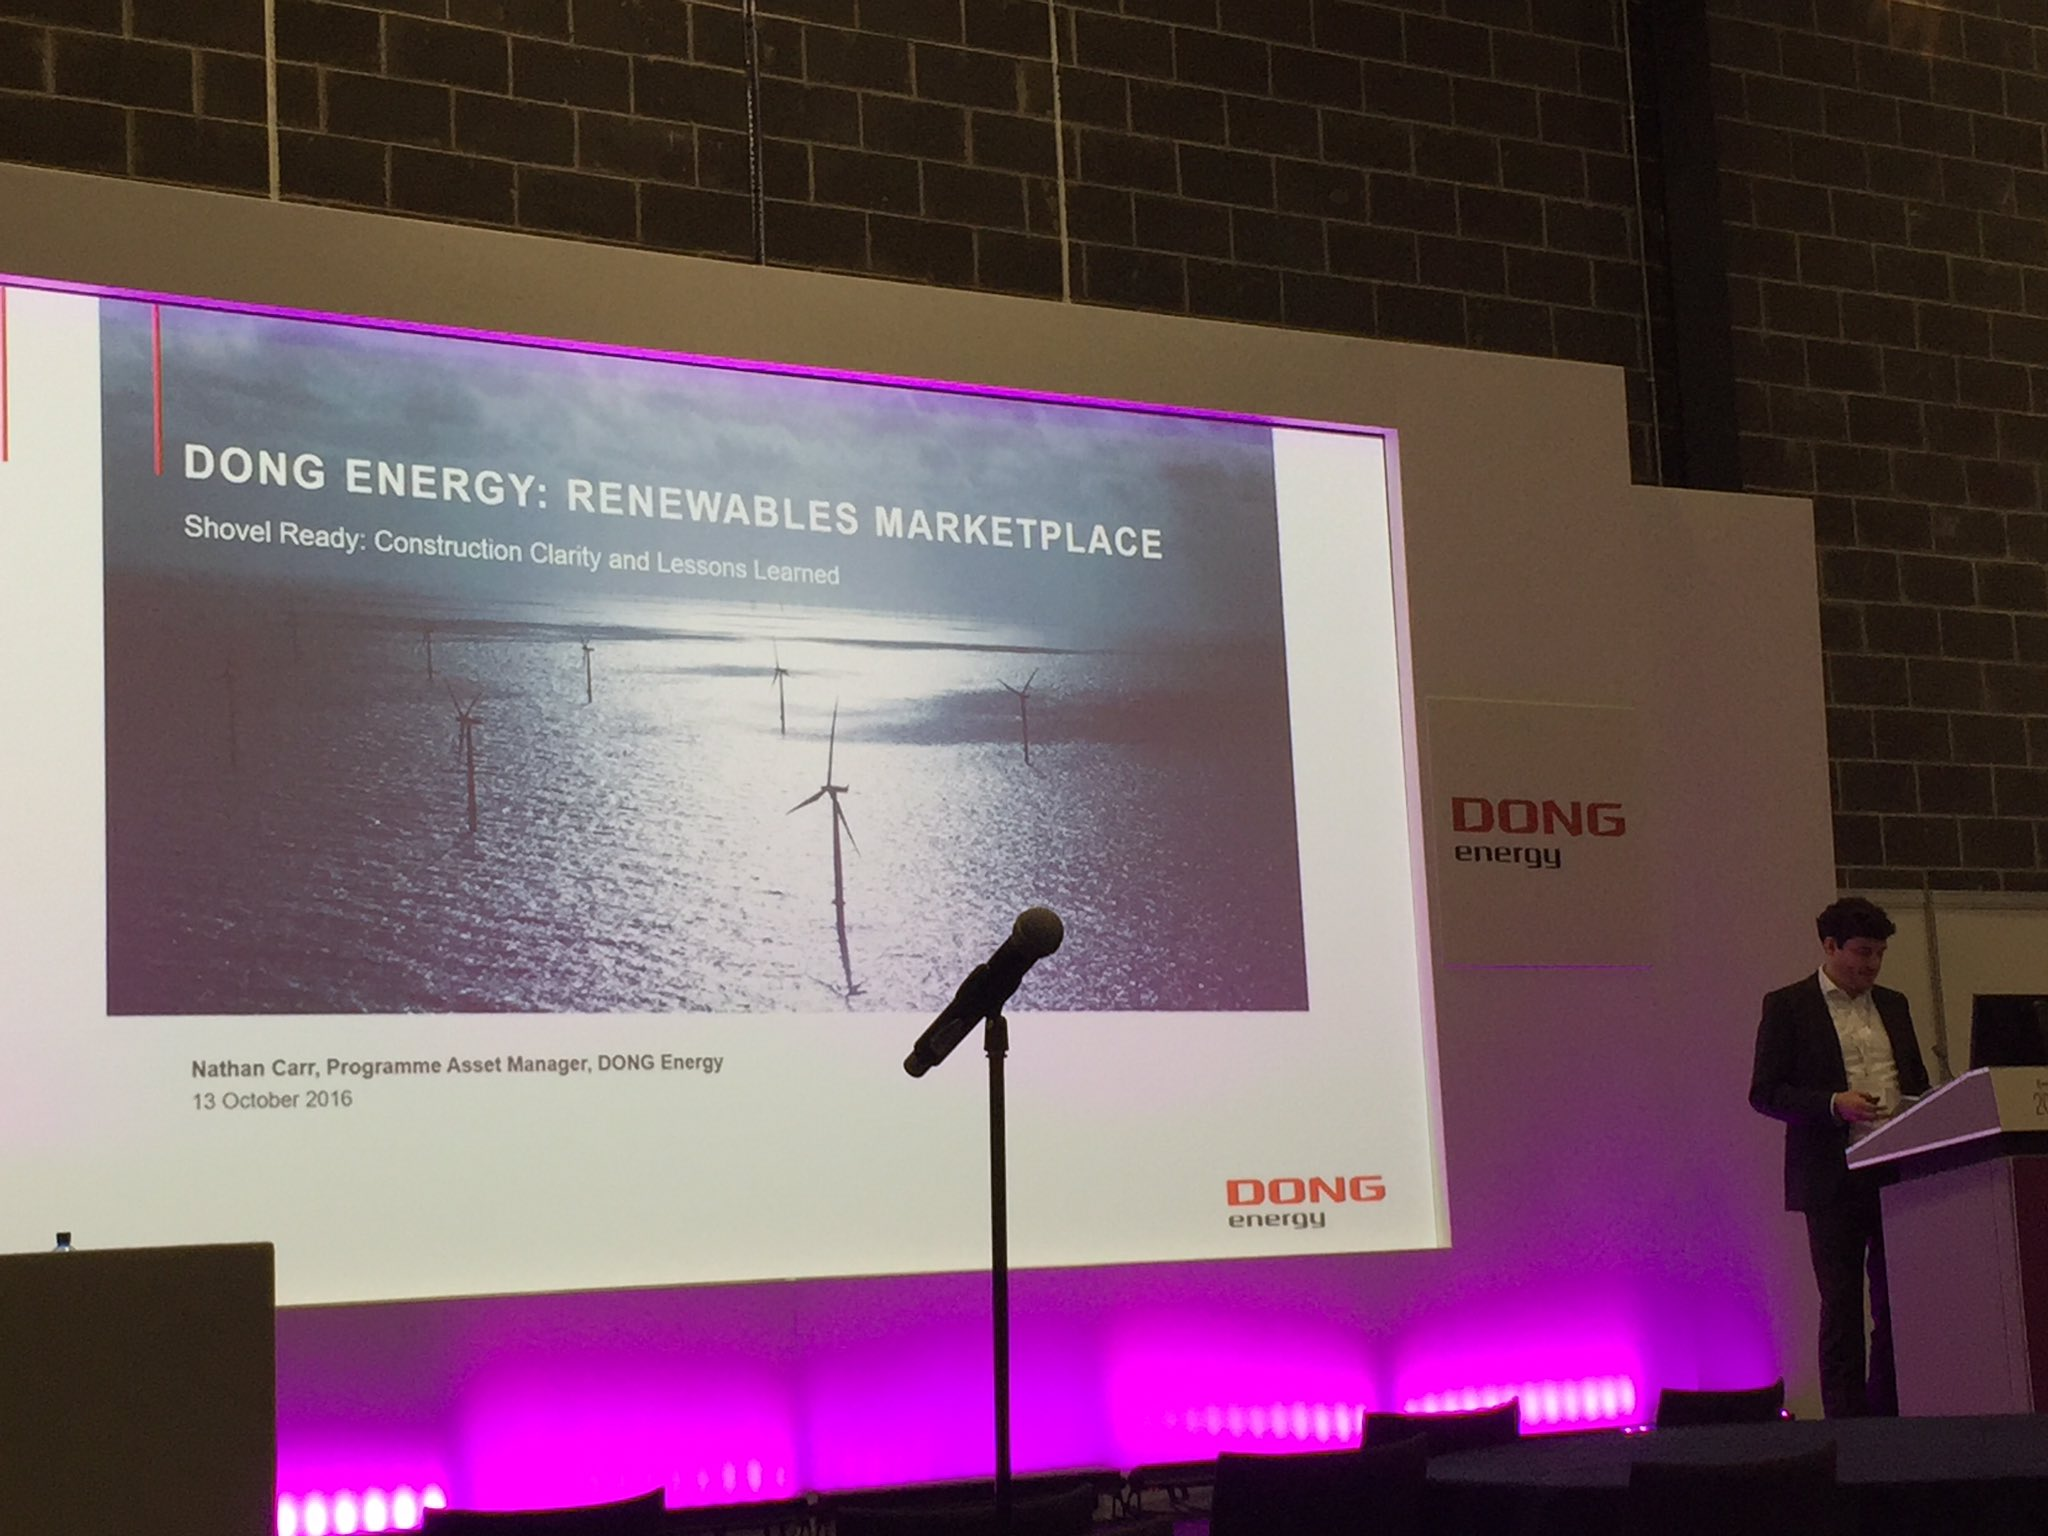 Nathan Carr from @DONGEnergyUK speaking about construction lessons learned in #offshorewind at #RUKMARKET16 https://t.co/8KTu0ICV4m